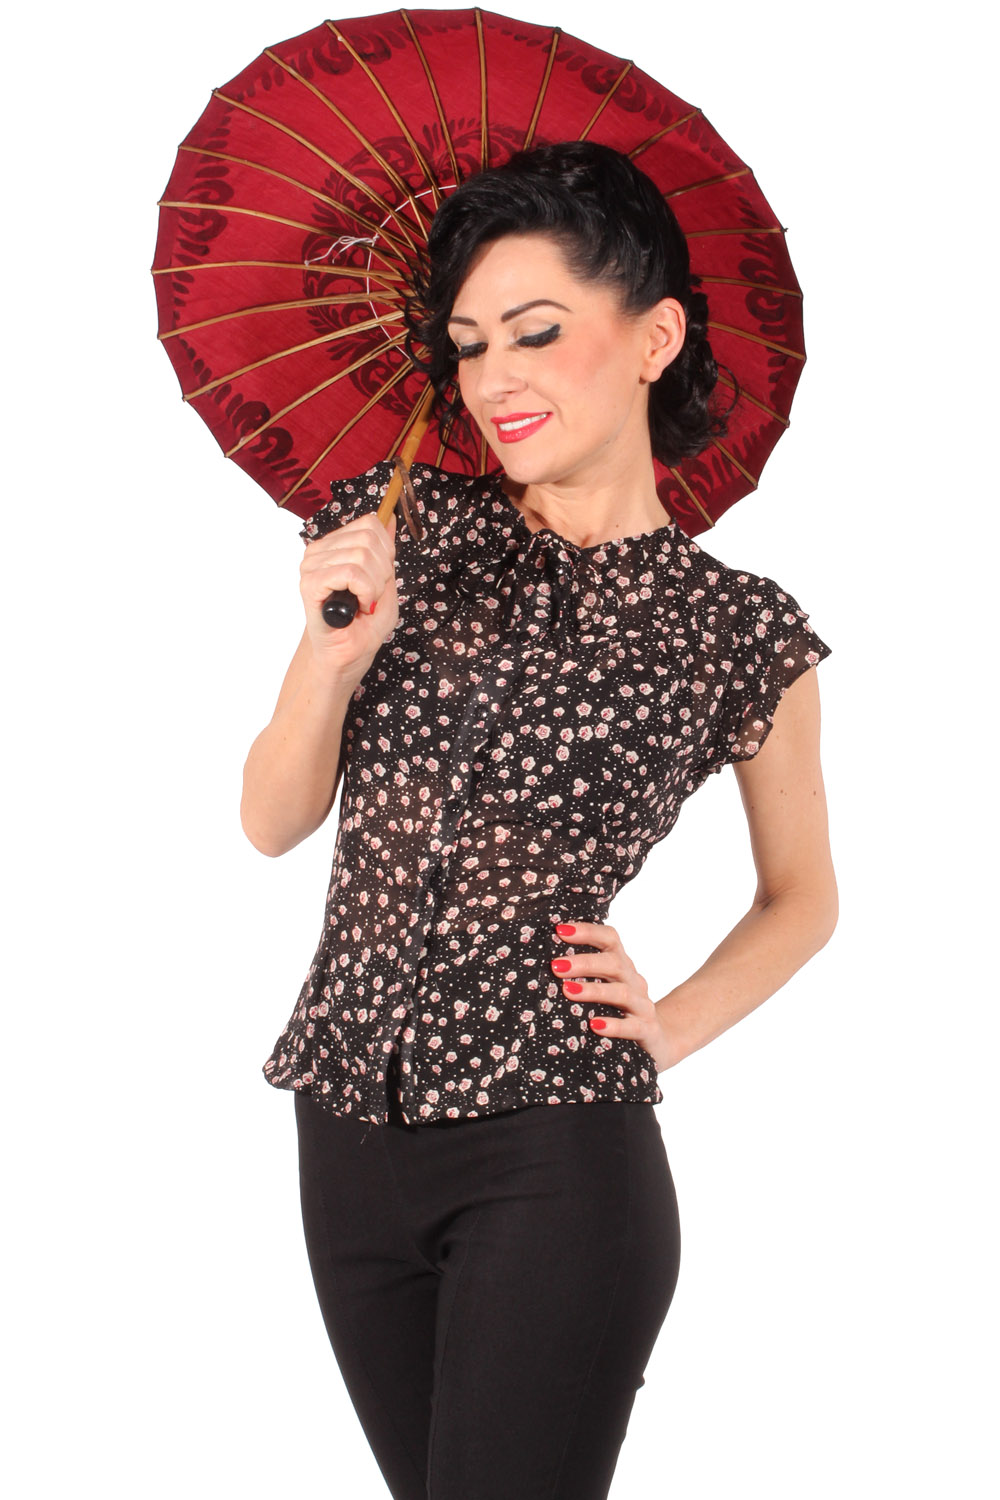 retro Rockabilly Schmetterlingsärmel Polka Dots Flower Chiffon Bluse